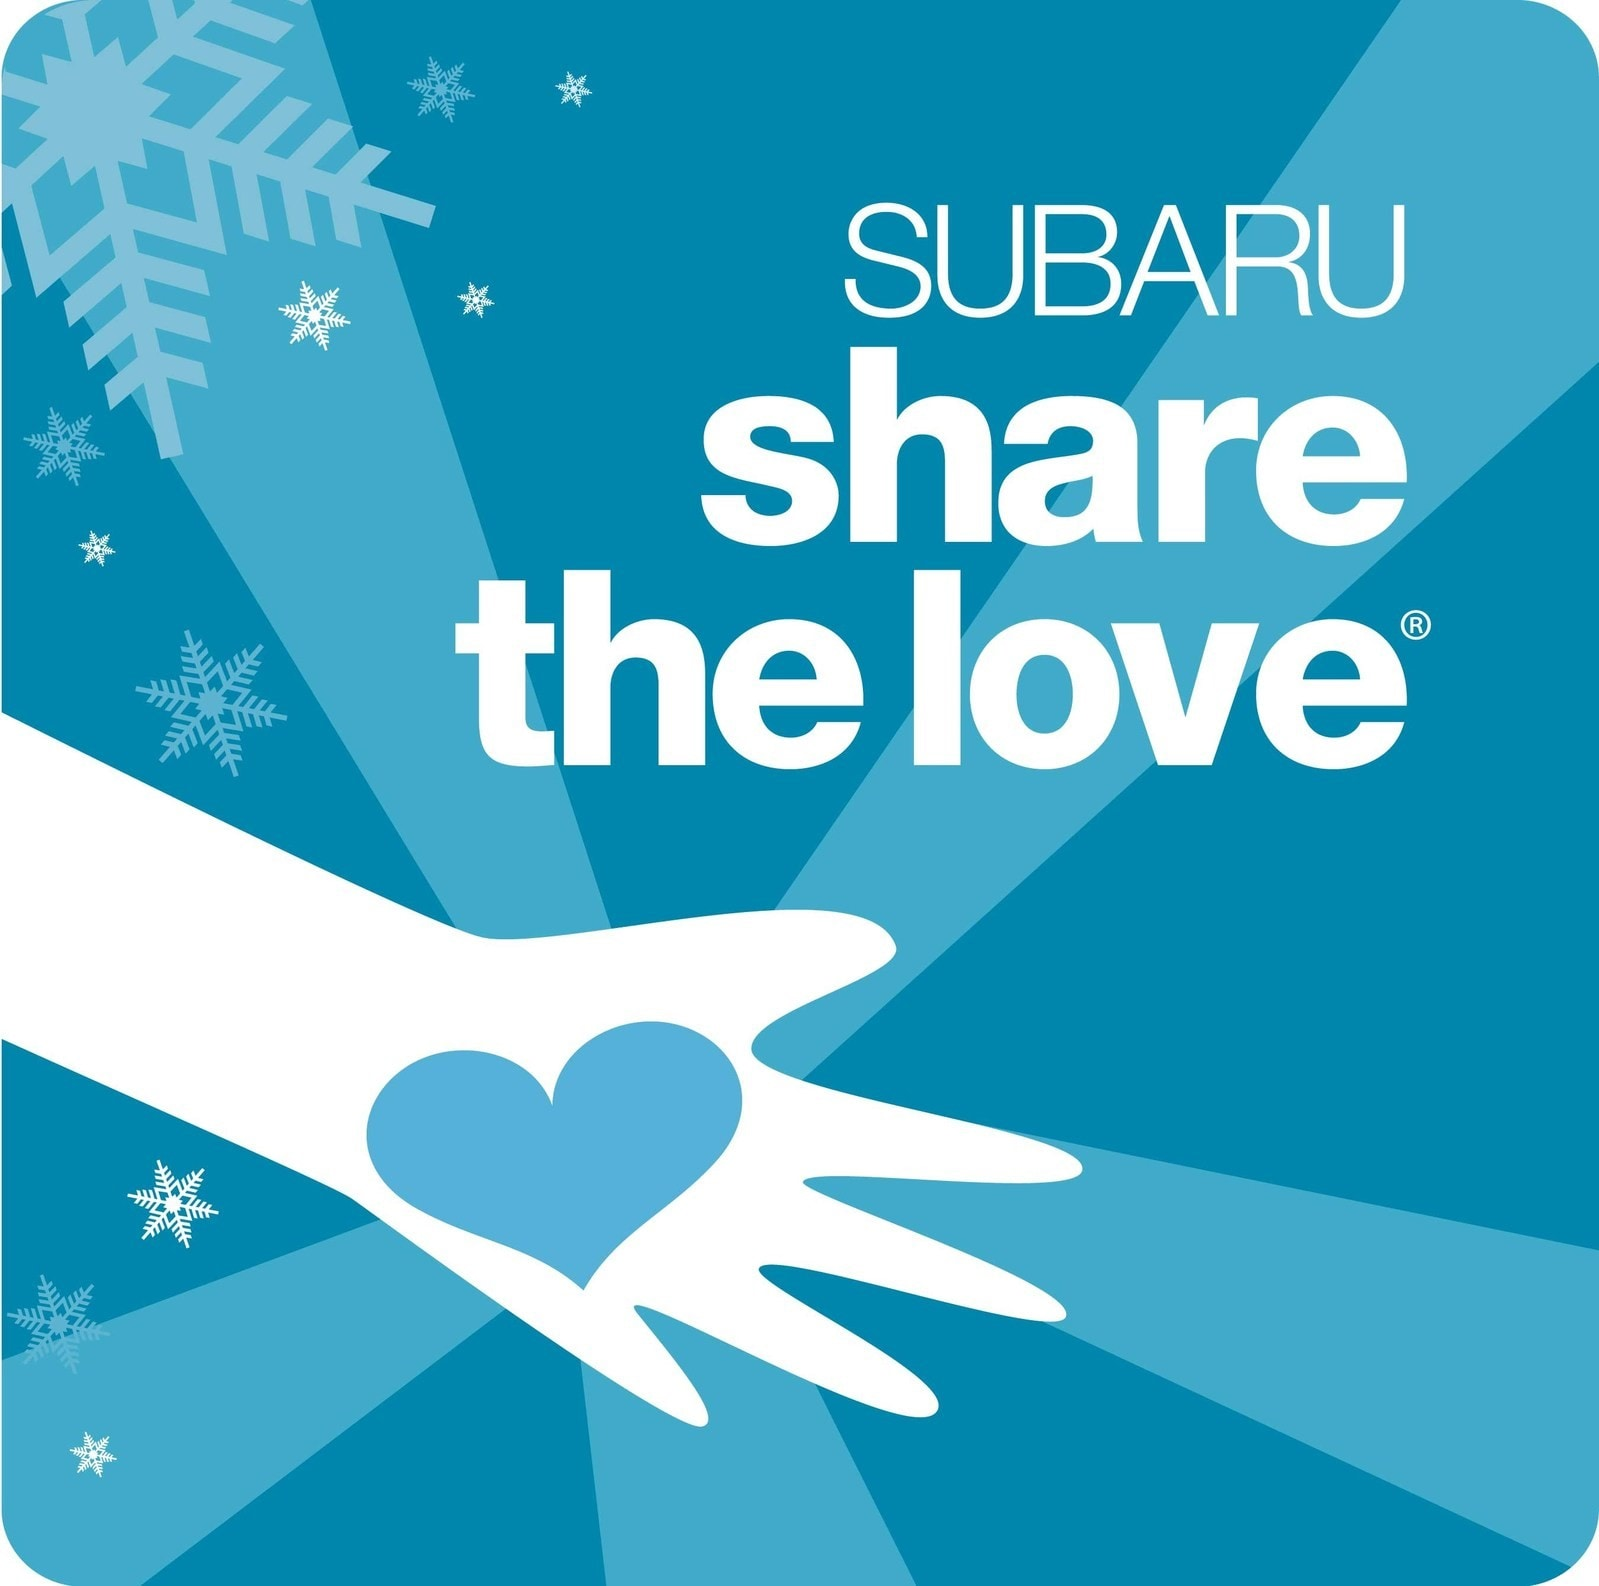 Highland Park Il Subaru Dealer 5 Star Ratings Muller Boxer 4 Engine Fwd Trans Diagram Will Donate 250 For Every New Vehicle Sold Or Leased